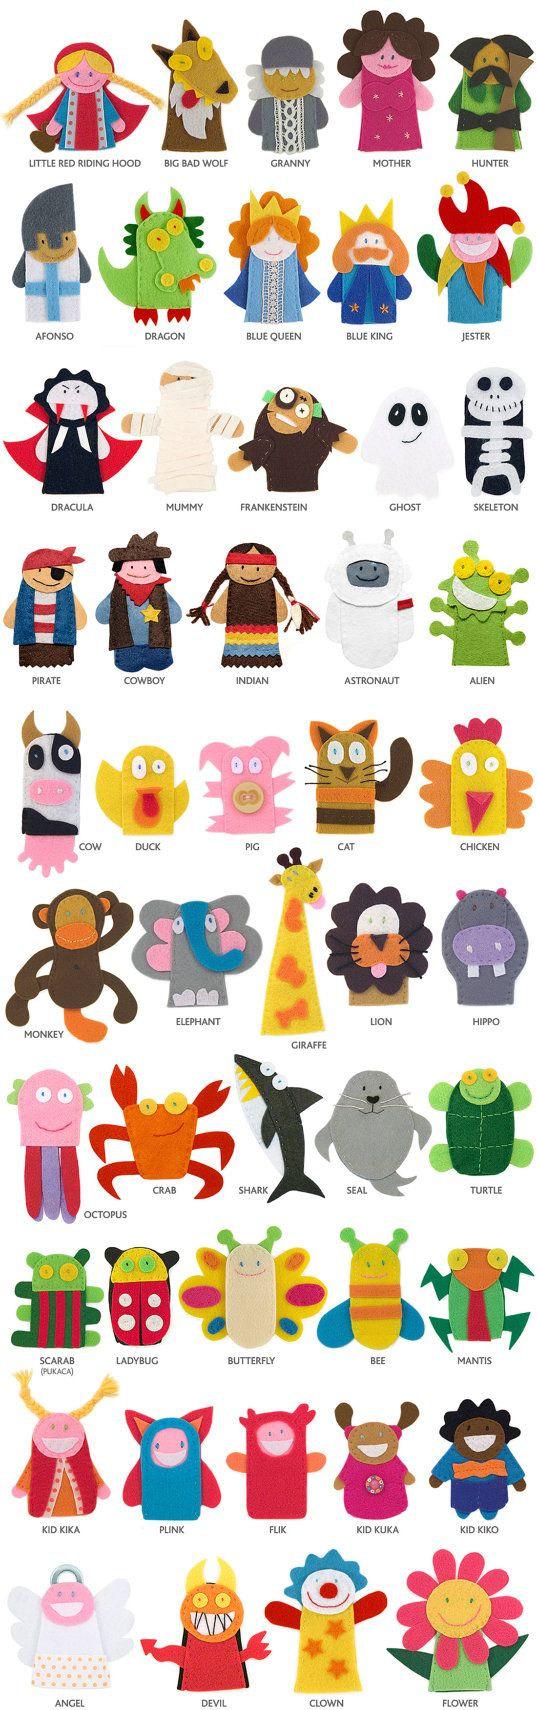 5 Finger puppets choose 5 finger puppets and the color por pukaca